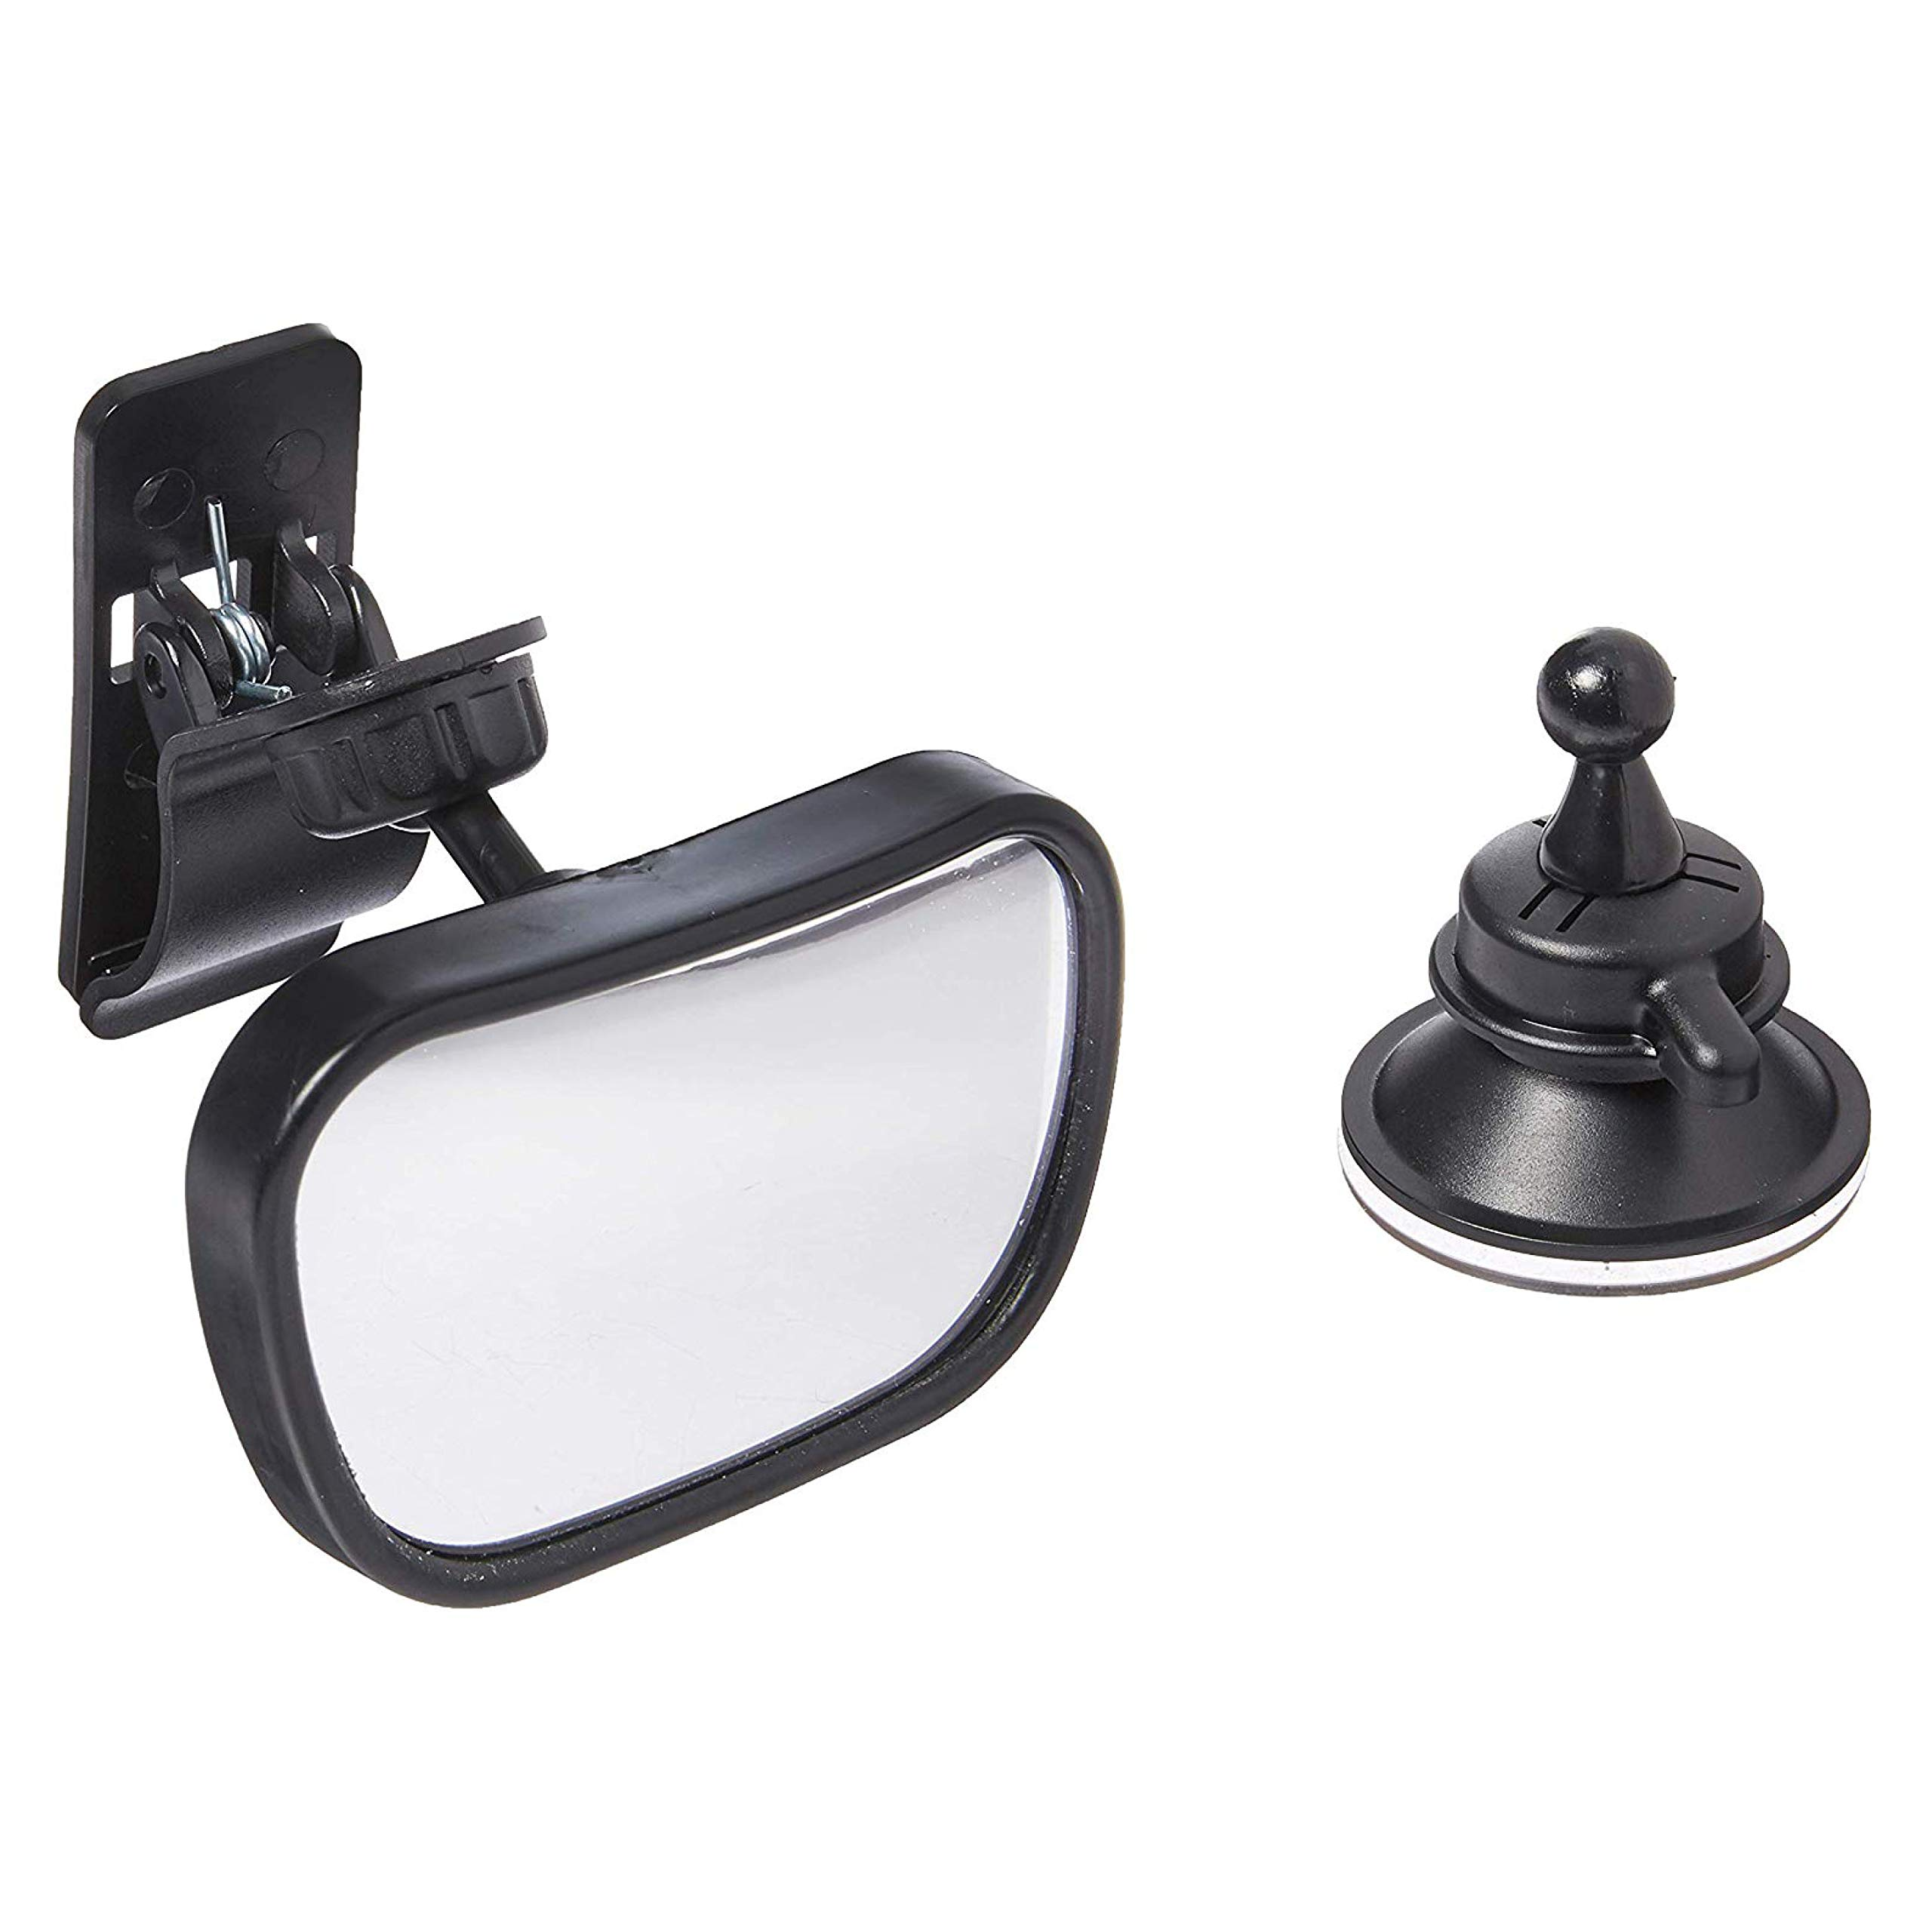 Pilot Automotive MI-404 Clip-on Baby Mirror with Suction